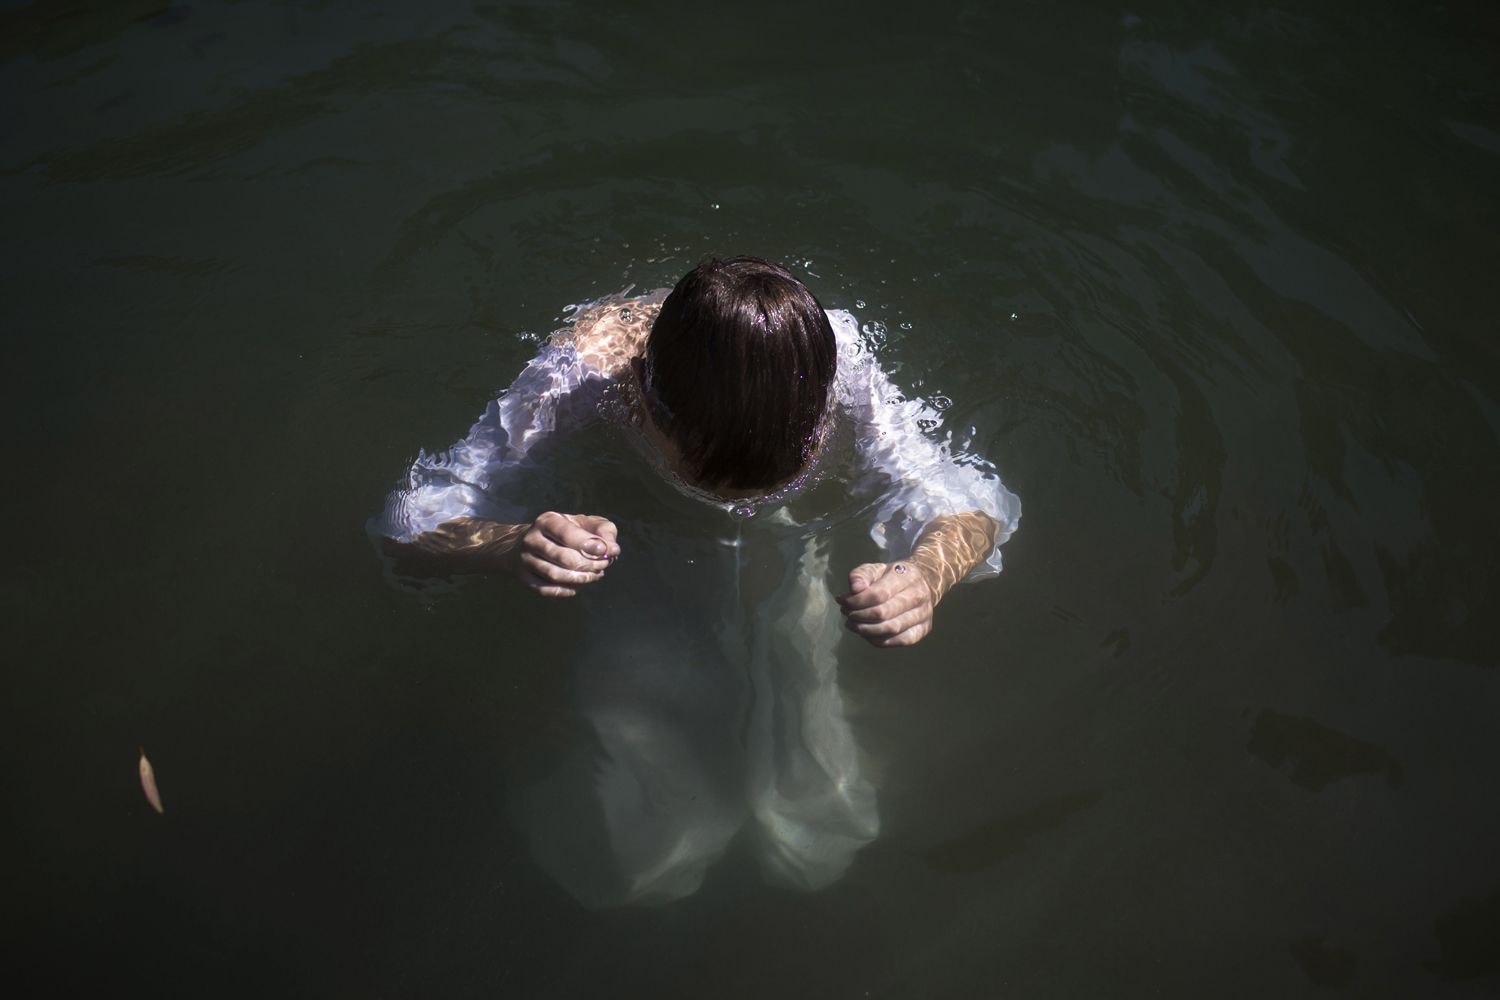 Oct. 16, 2013. A Christian pilgrim immerses himself in the waters of the Jordan River at Yardenit Baptismal Site near Tiberias in northern Israel.